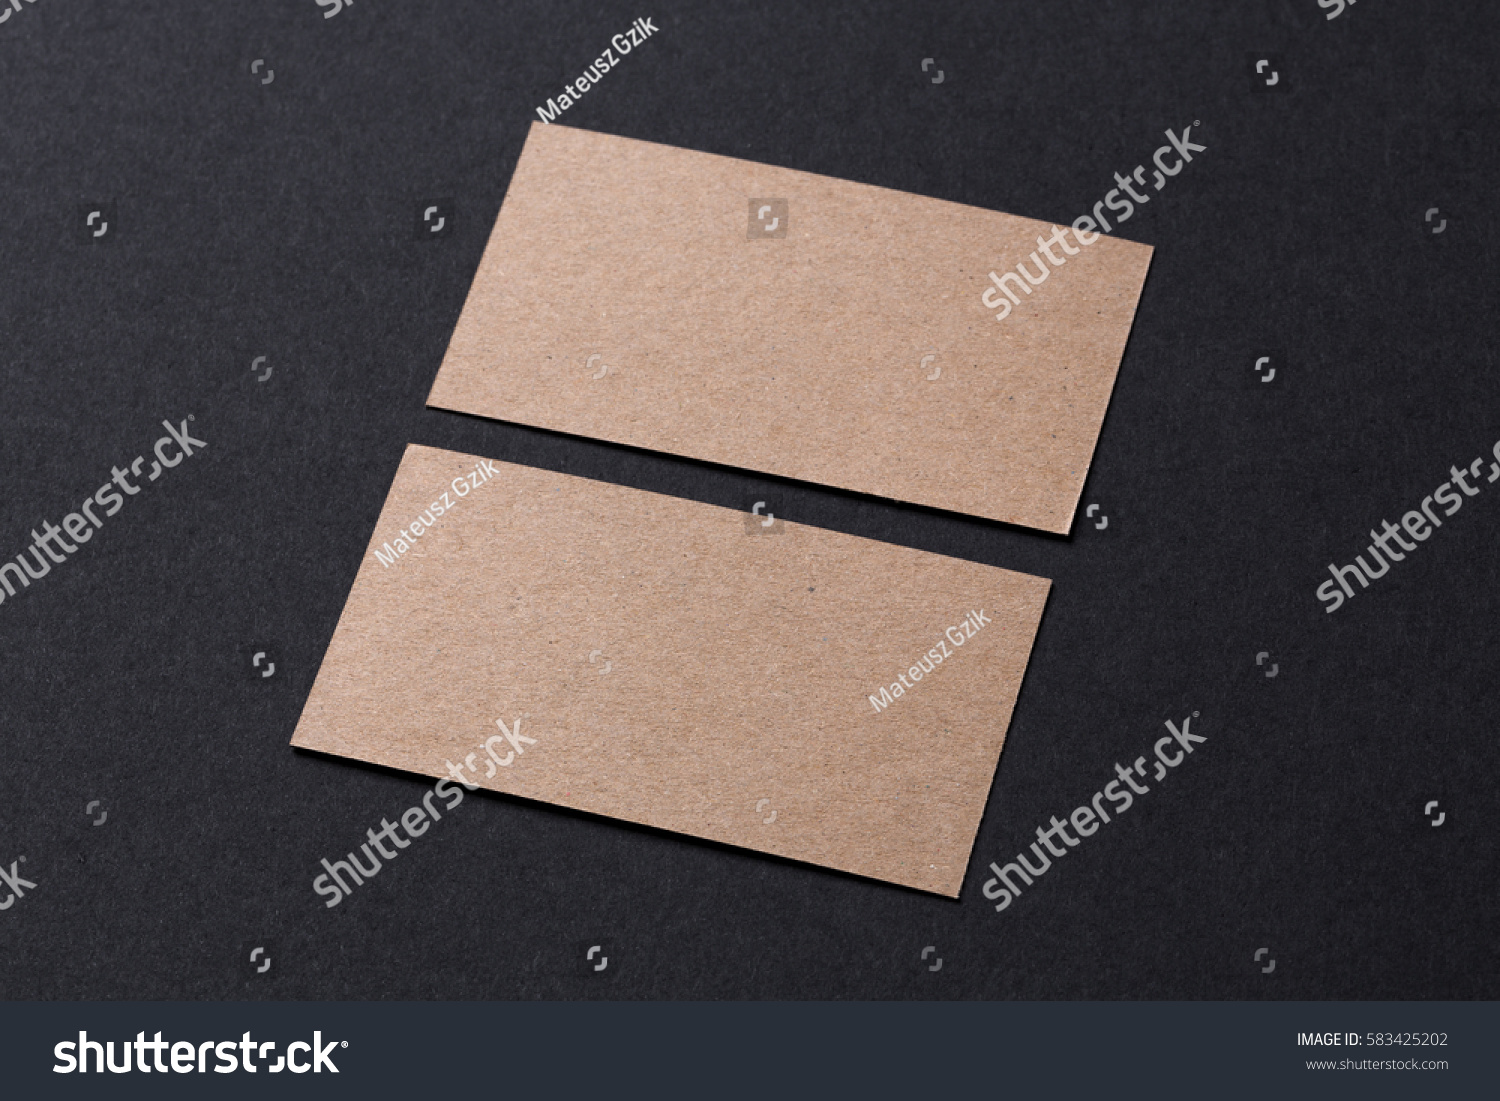 Blank Recycled Paper Business Cards Stock Photo 583425202 ...